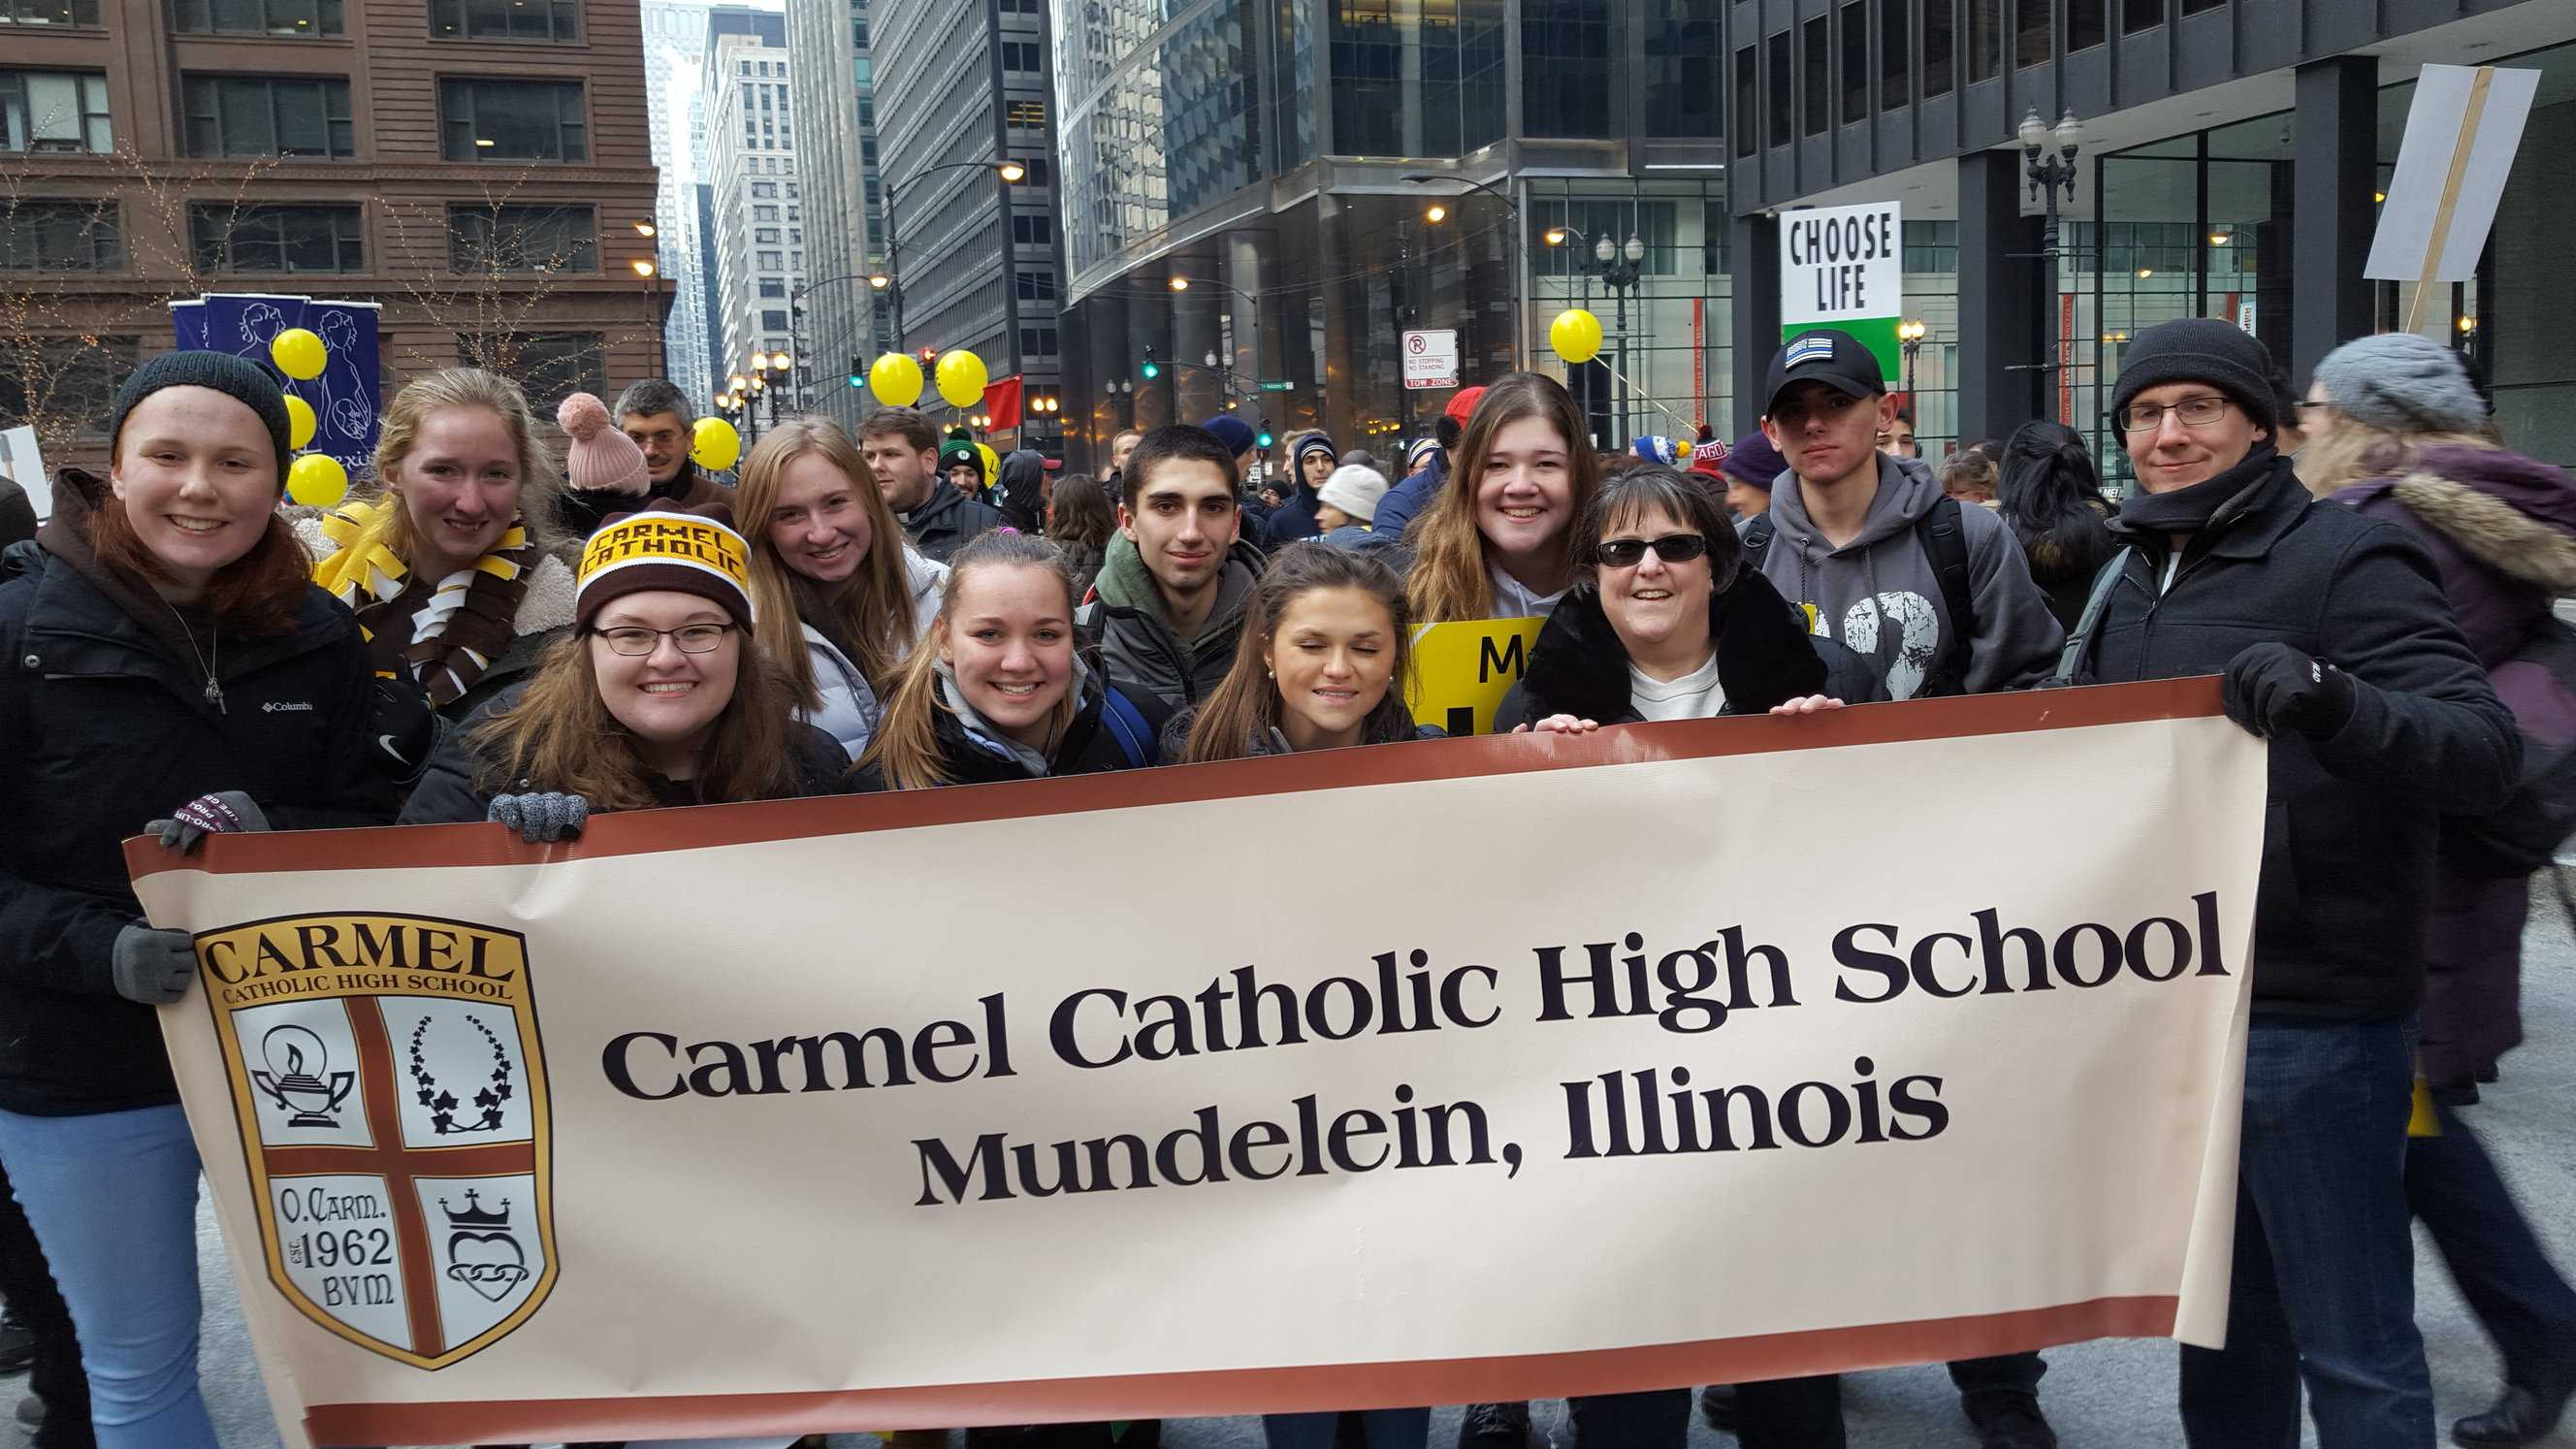 Students and faculty march through the streets of Chicago